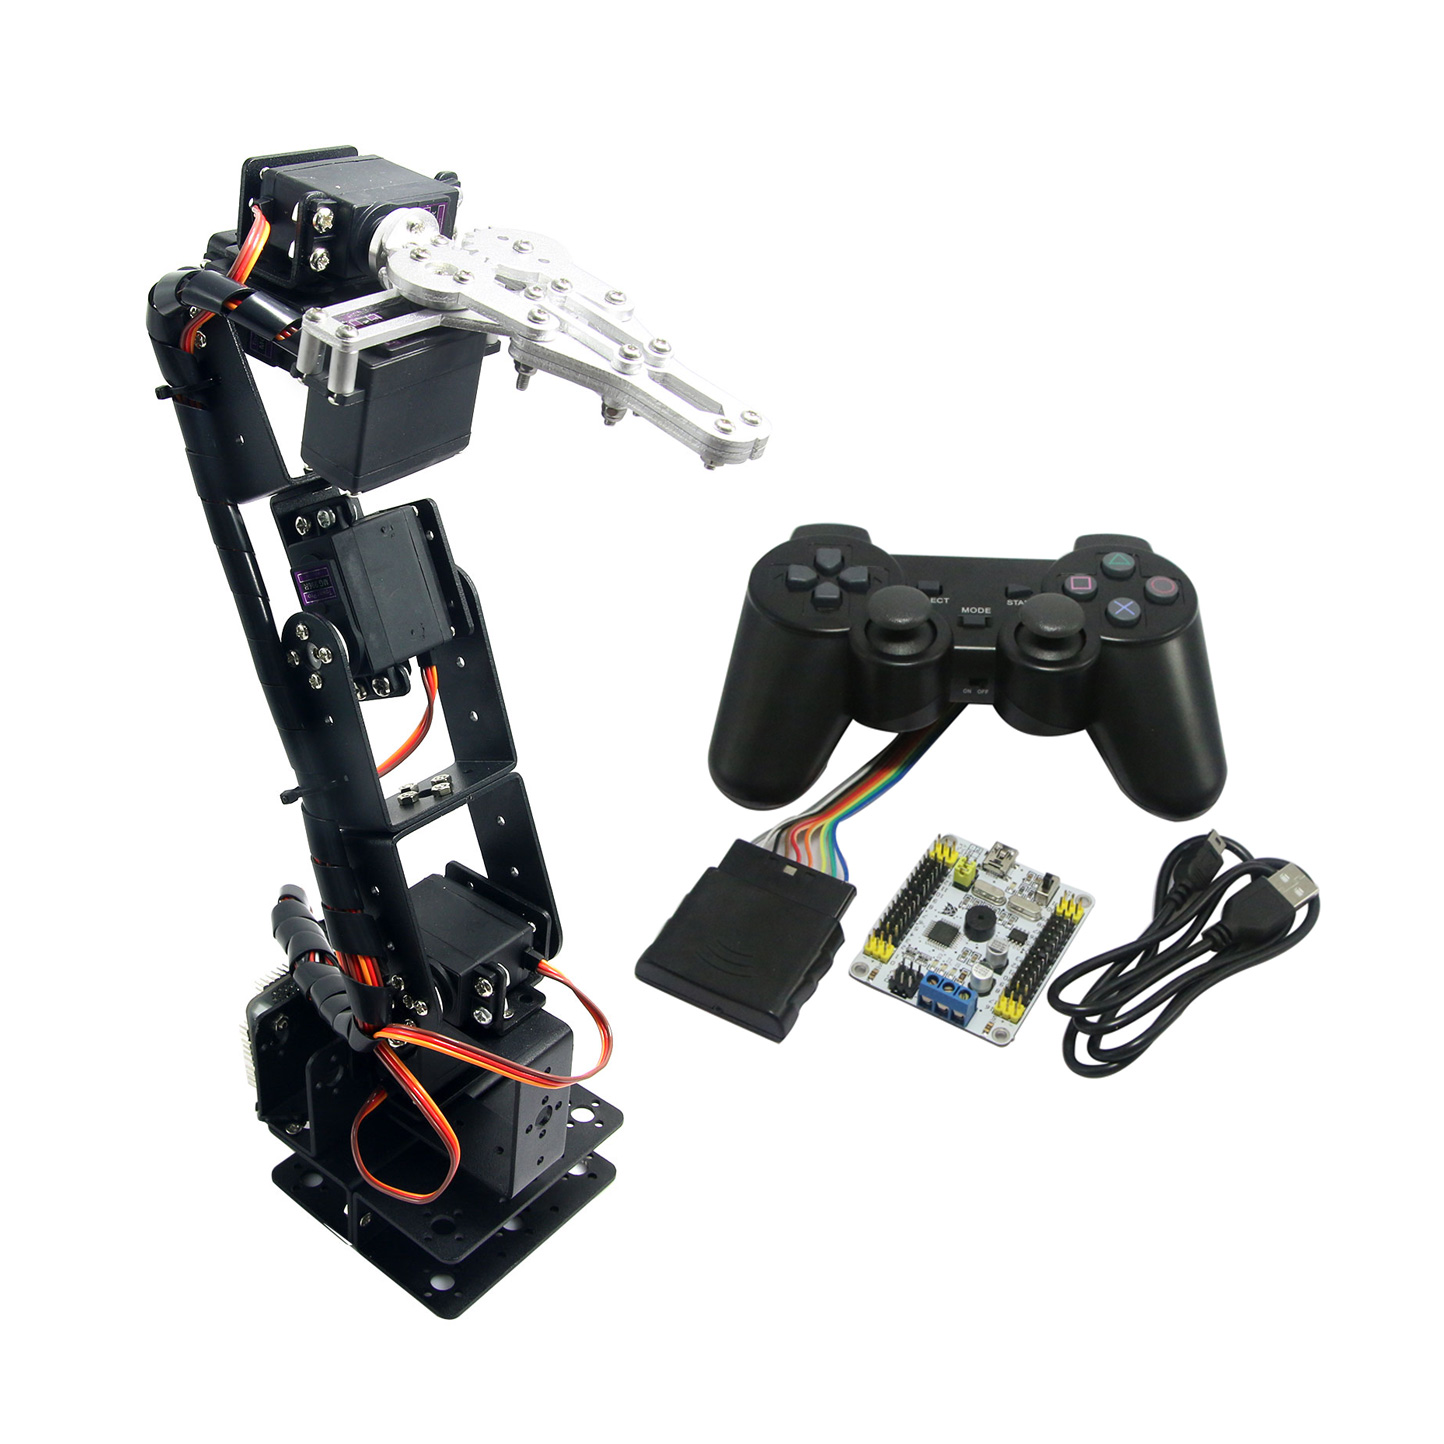 Assembled 6 DOF Aluminium Mechanical Robotic Arm with Clamp Claw & LD-1501 Servos & Controller for Arduino манипулятор 6 dof 320 мм dfrobot robotic arm